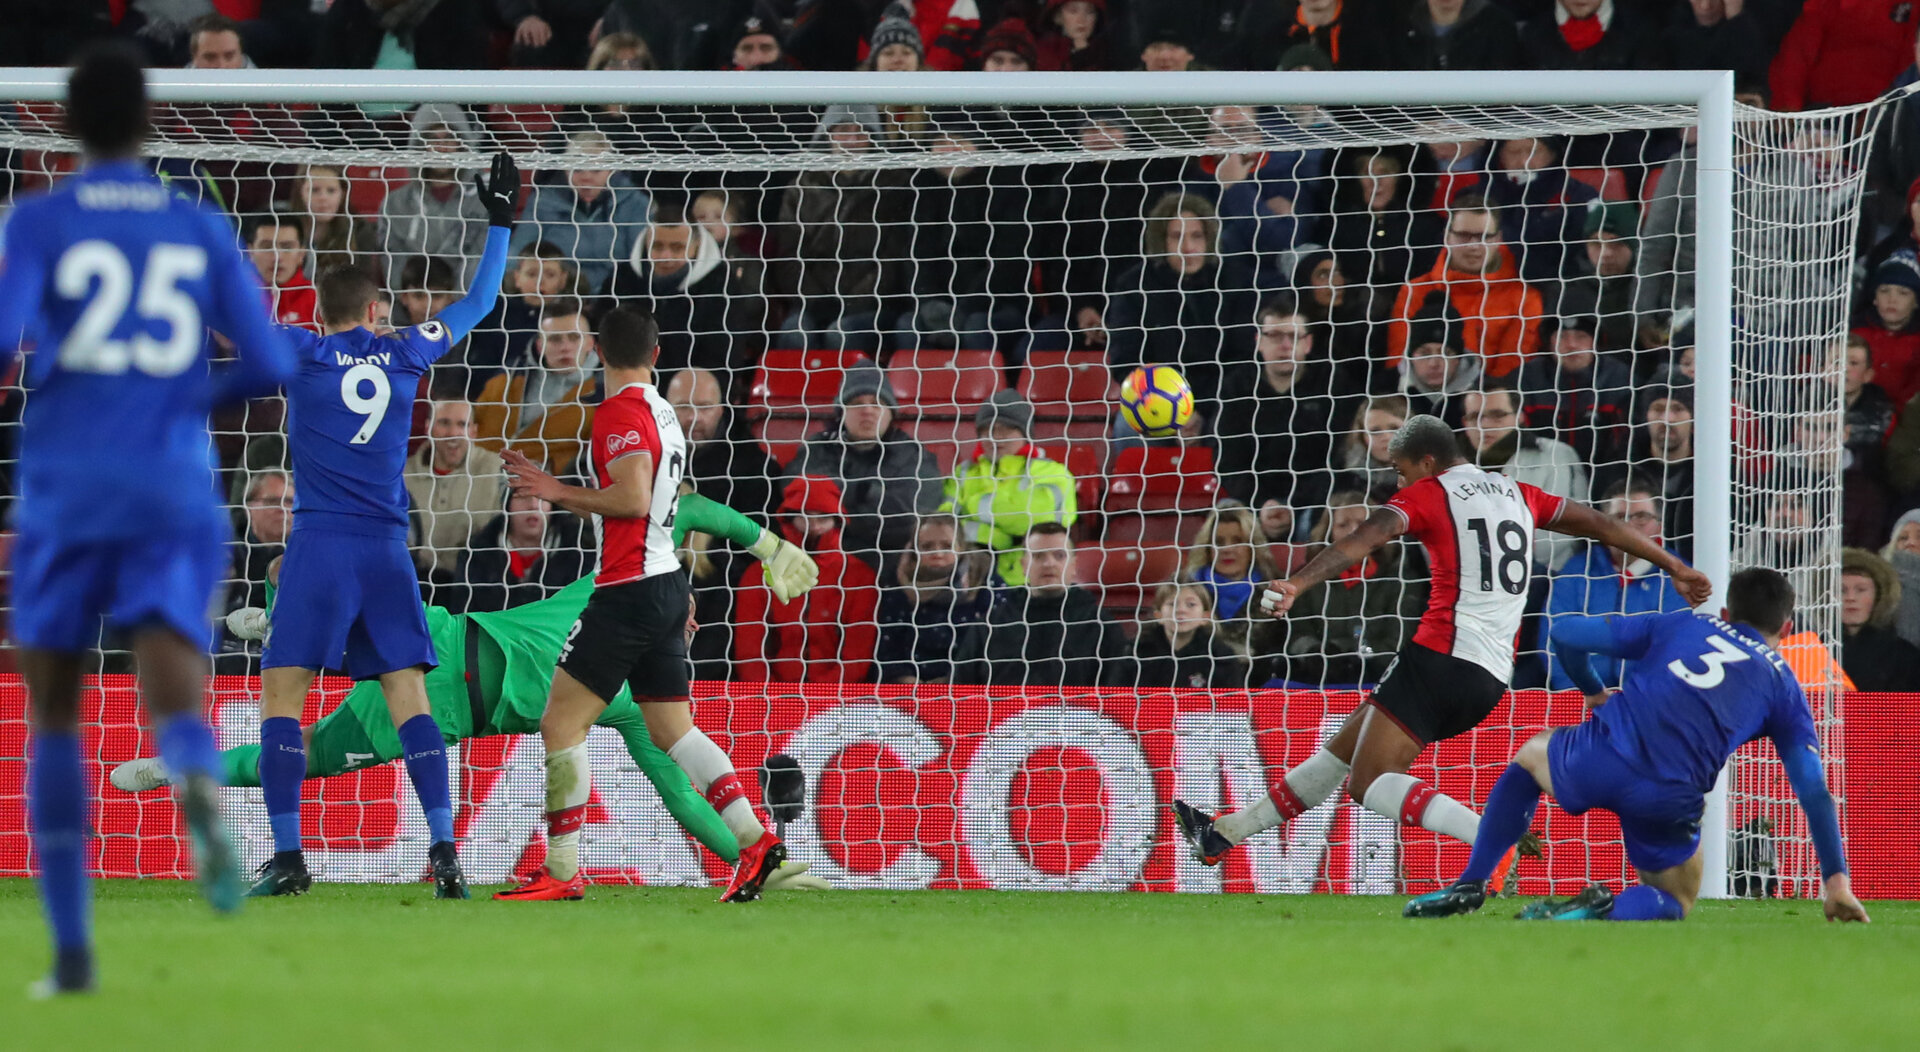 SOUTHAMPTON, ENGLAND - DECEMBER 13: Southampton's Mario Lemina clears off the line during the Premier League match between Southampton and Leicester City at St Mary's Stadium on December 13, 2017 in Southampton, England. (Photo by Matt Watson/Southampton FC via Getty Images)